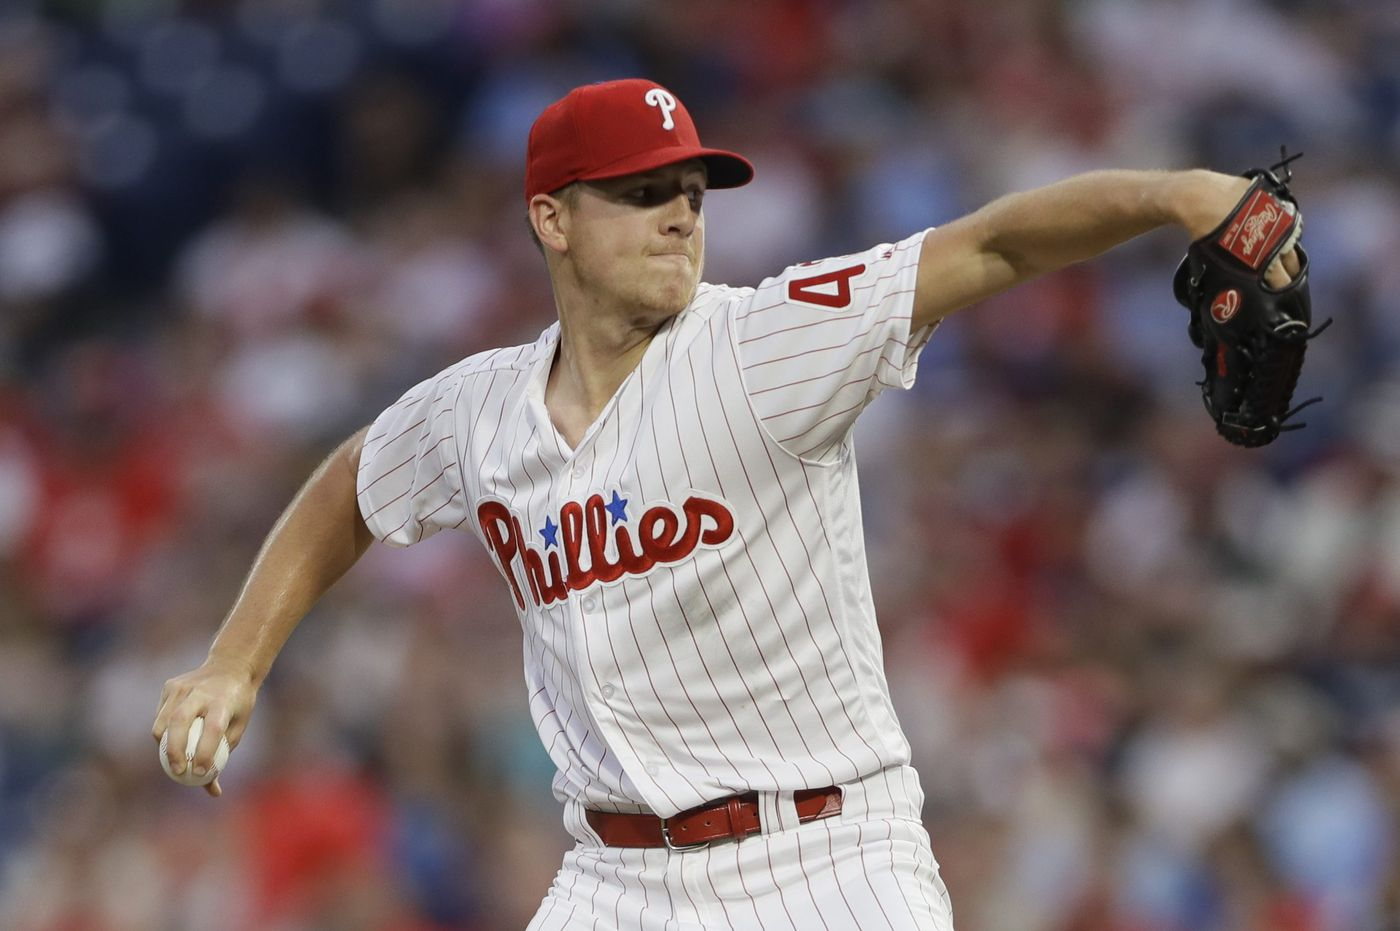 Phillies starter Nick Pivetta gives Cardinals a glimpse of his improvement | Extra Innings